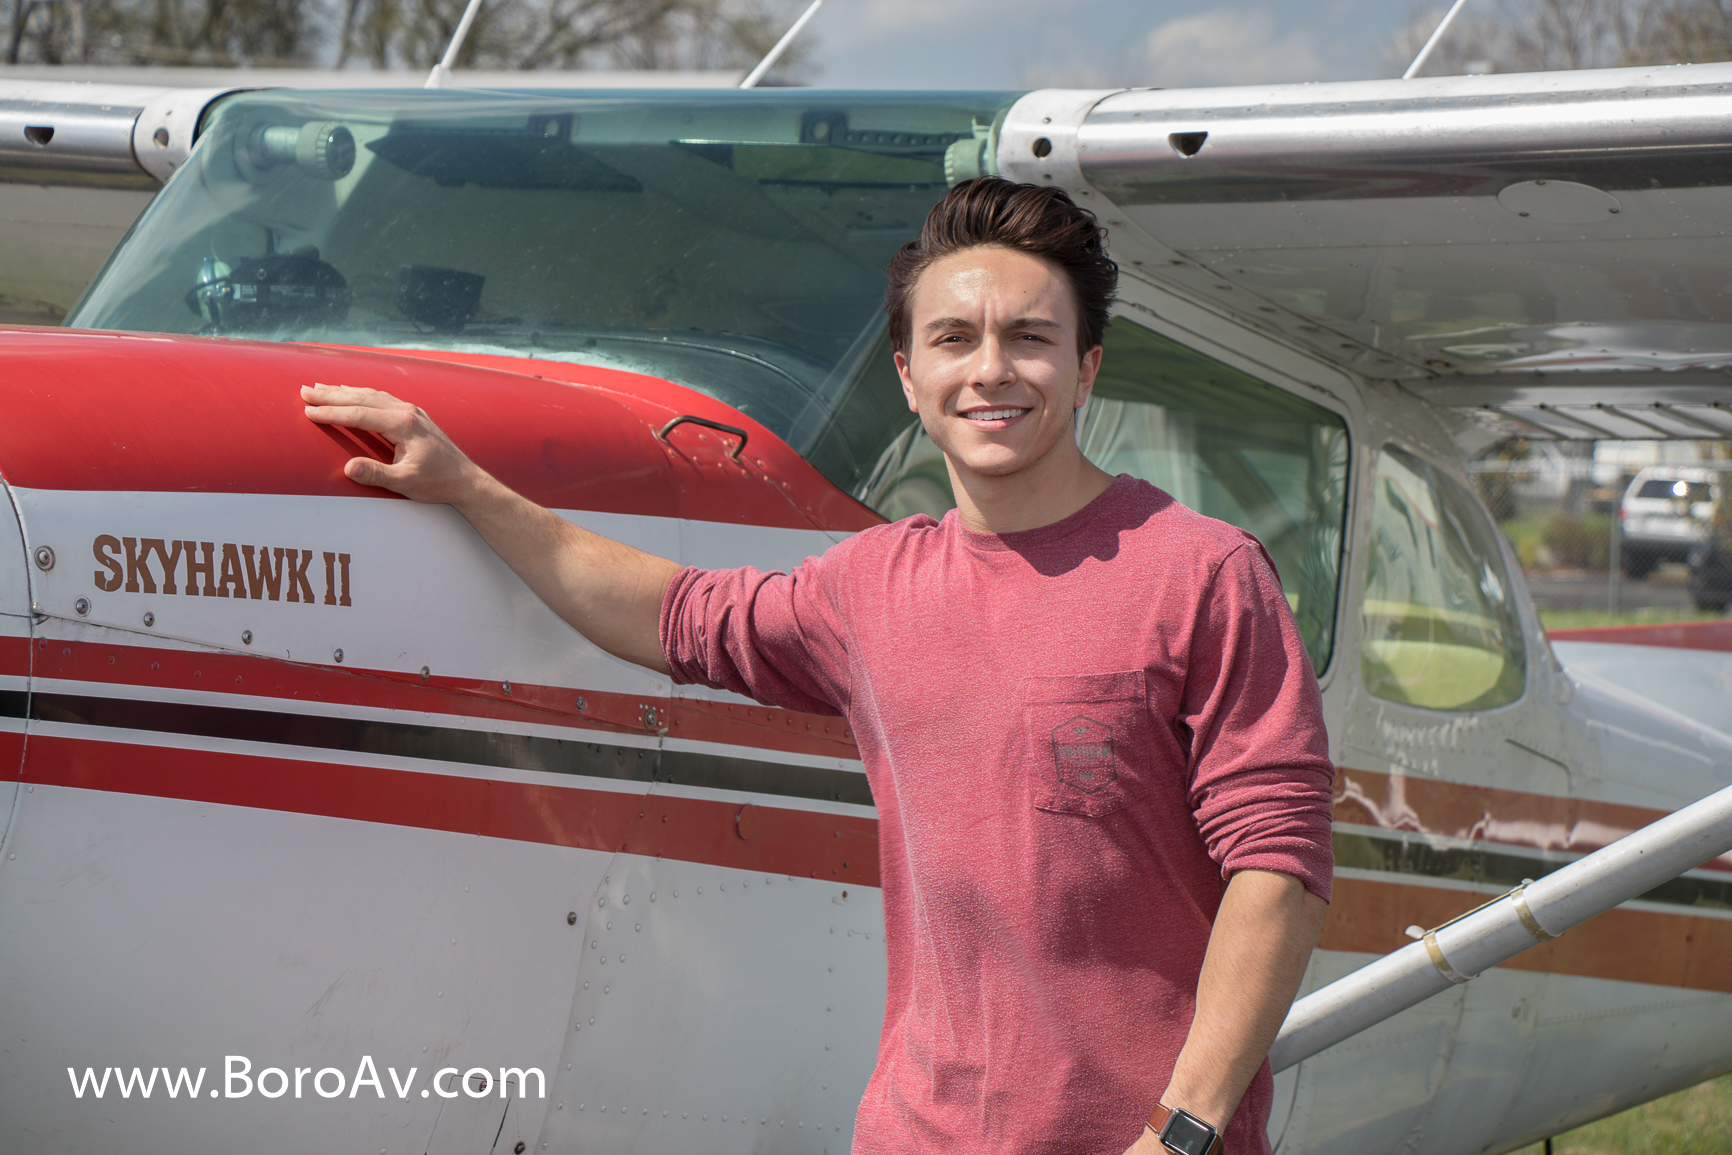 Tom Tippin, son of country music star Aaron Tippin, earns pilots license in Murfreesboro